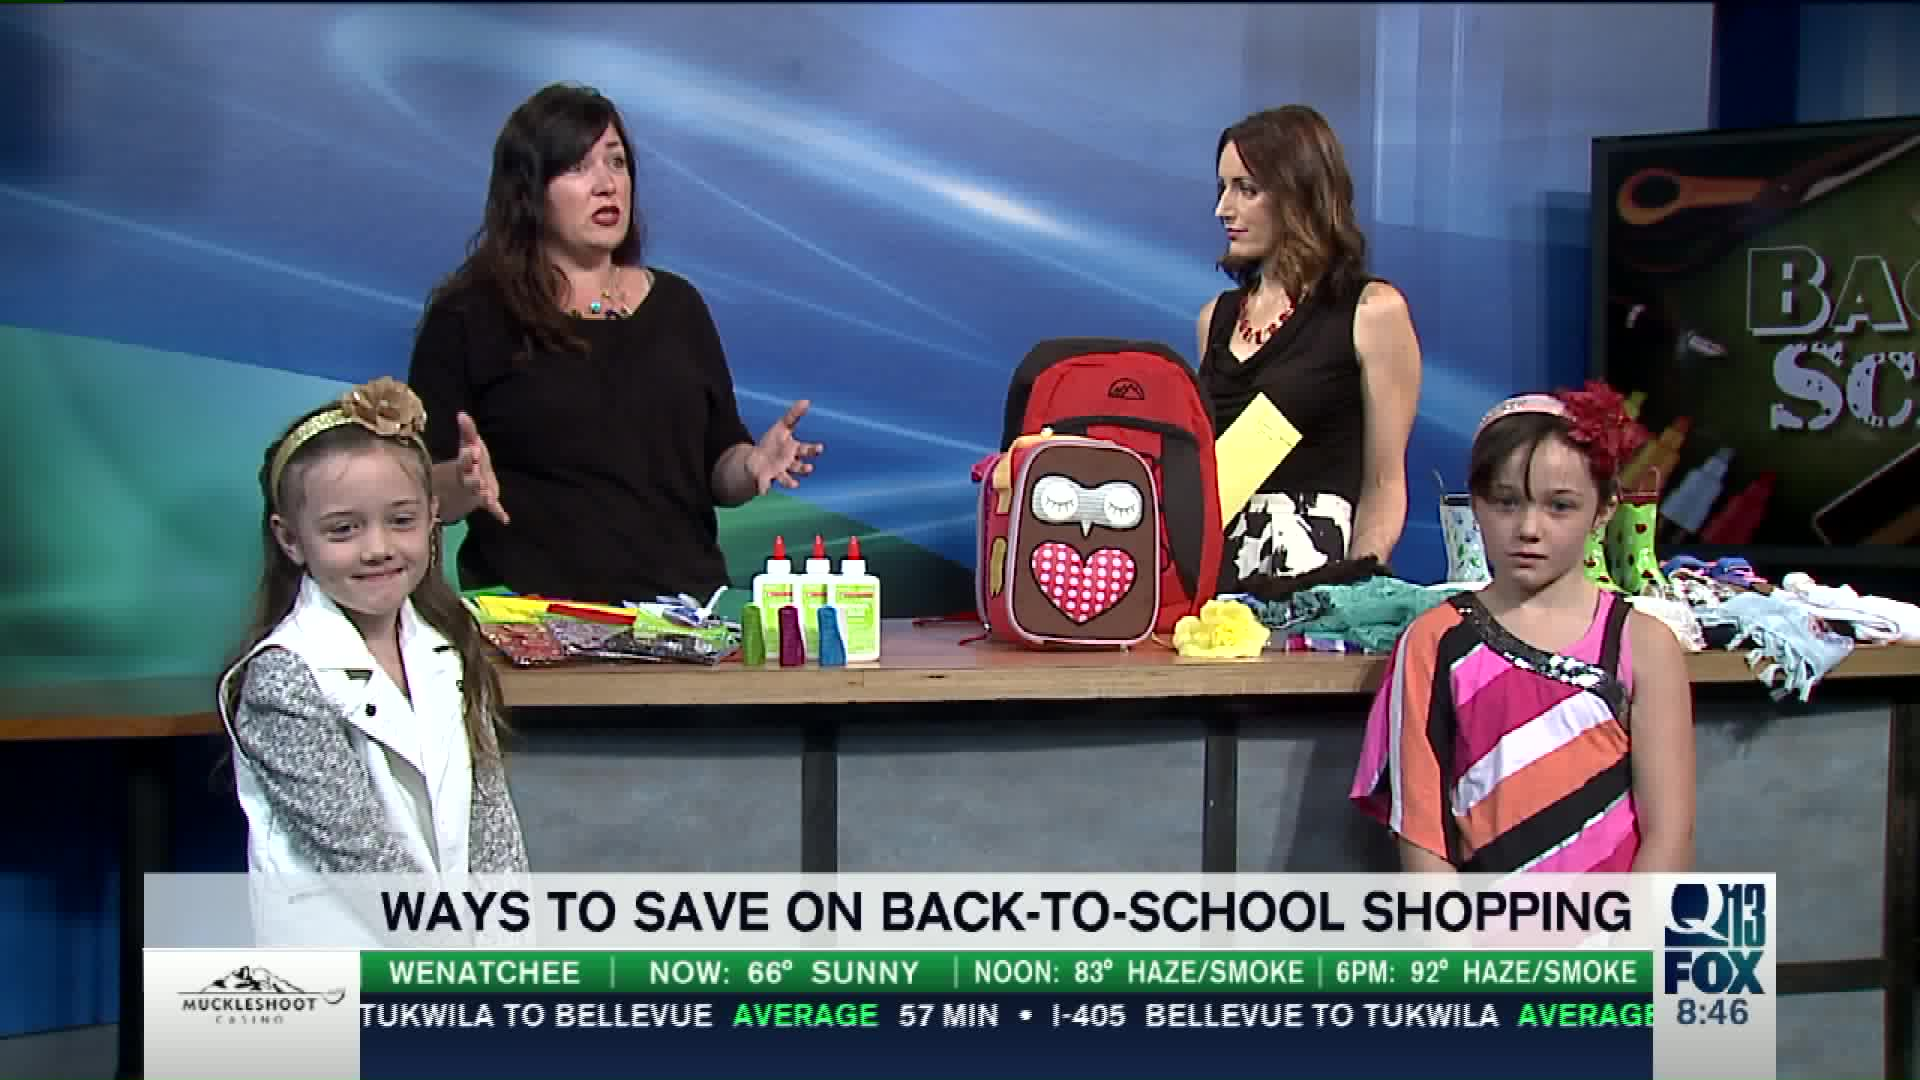 10 Easy Ways to Save on Back-to-School Shopping